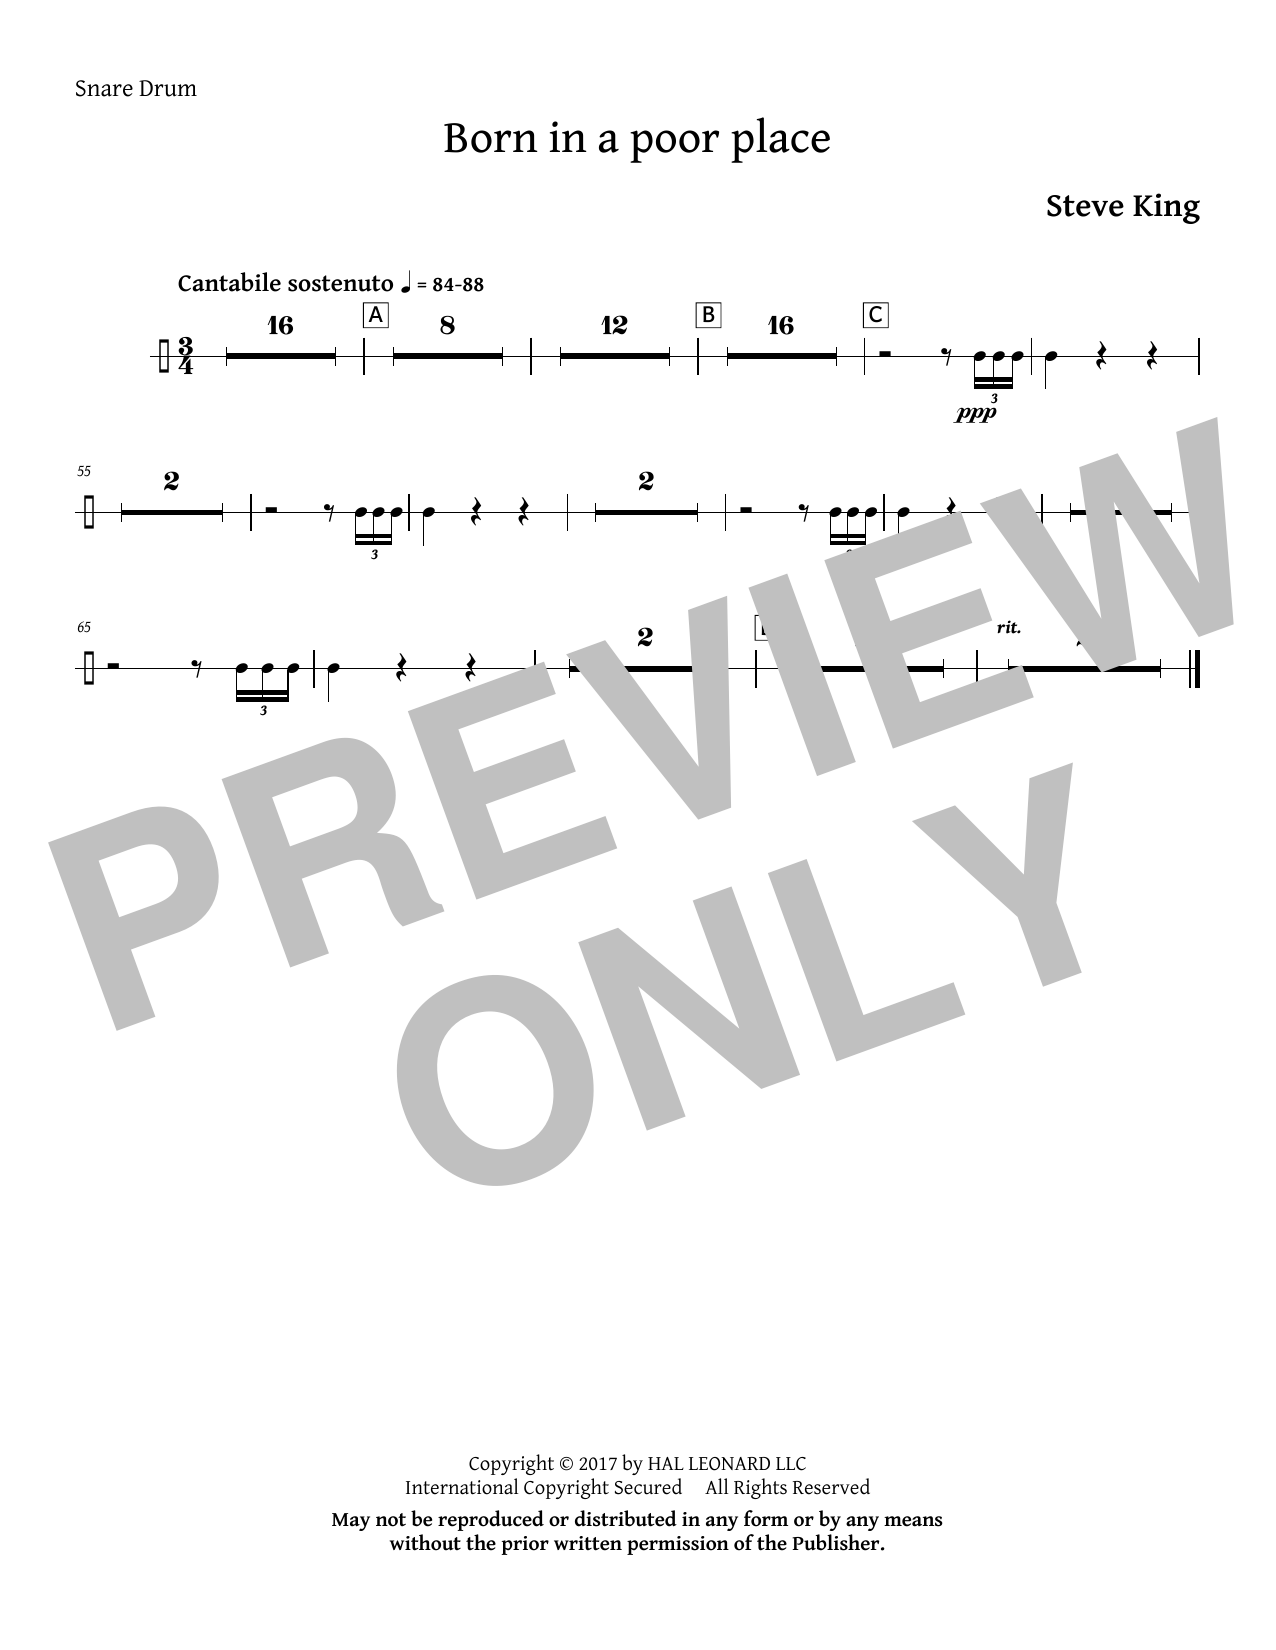 Born in a Poor Place - Snare Drum Sheet Music